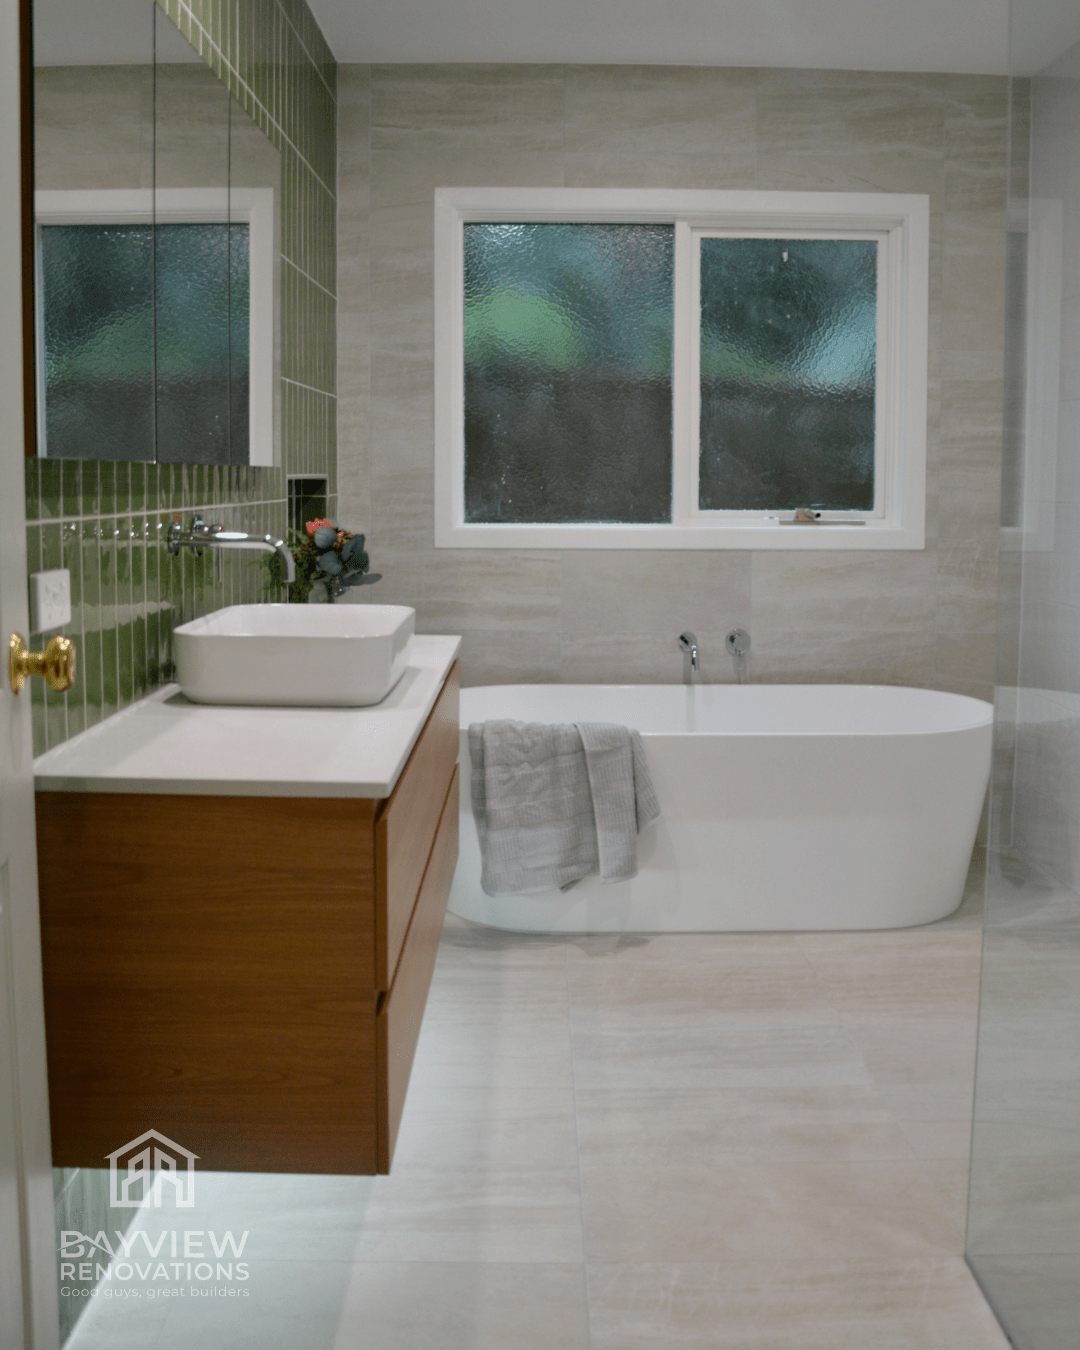 Complete Renovation Services - Bayview Renovations